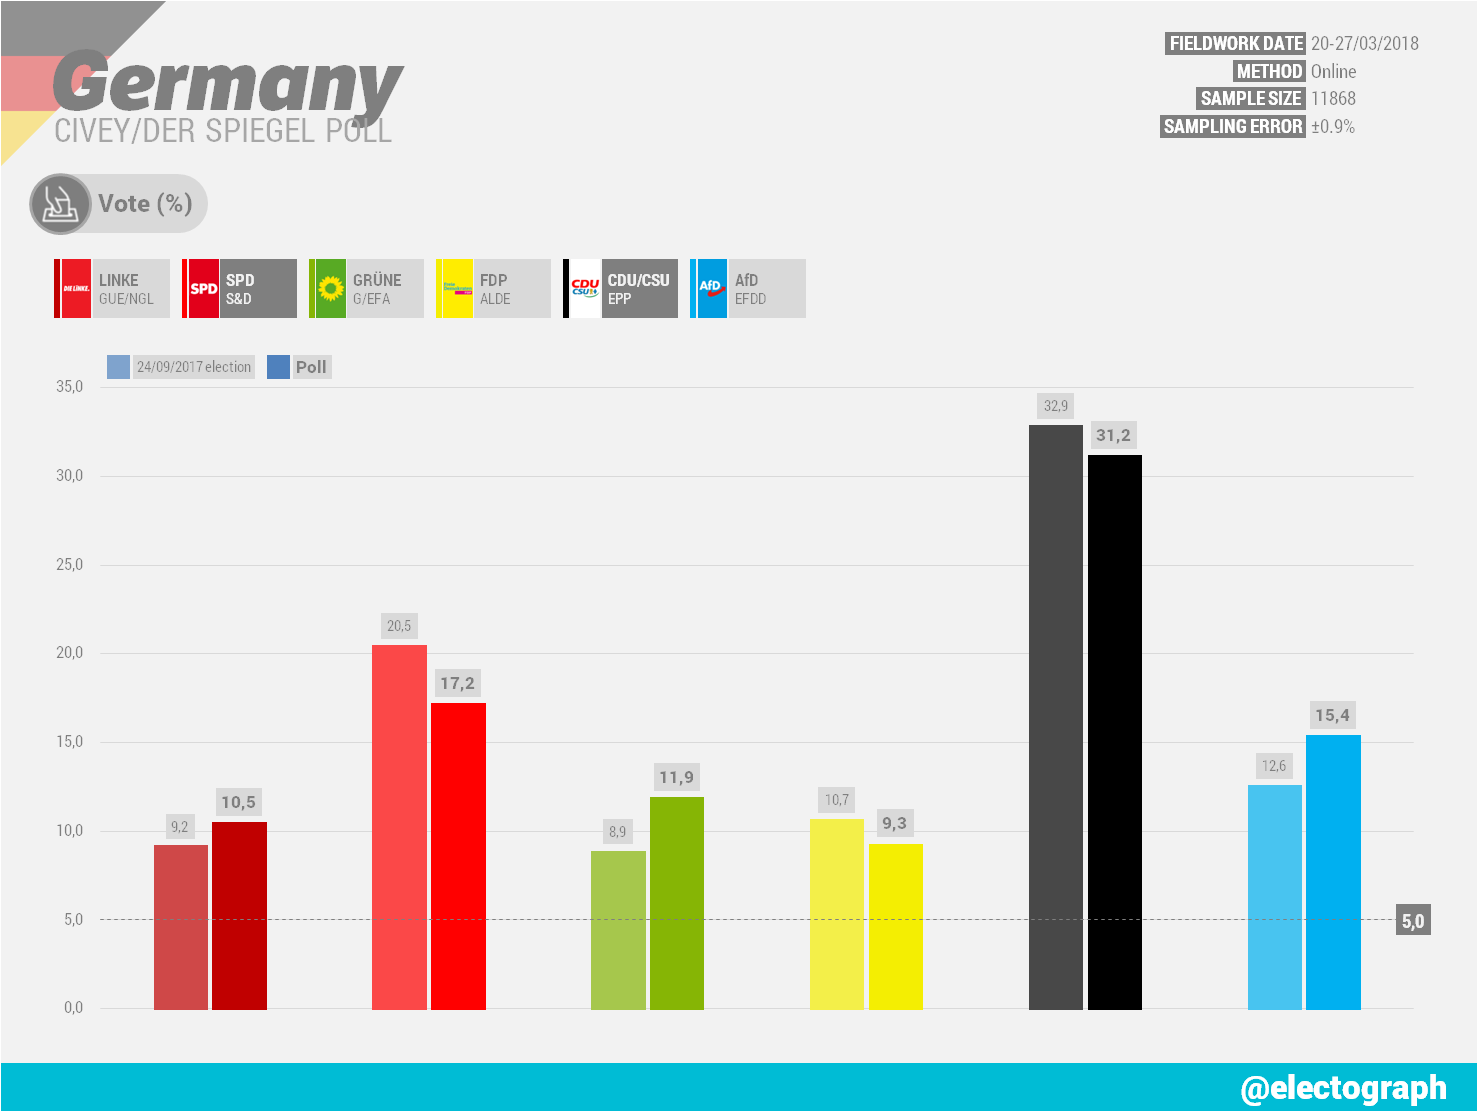 GERMANY Civey poll chart for Der Spiegel, March 2018